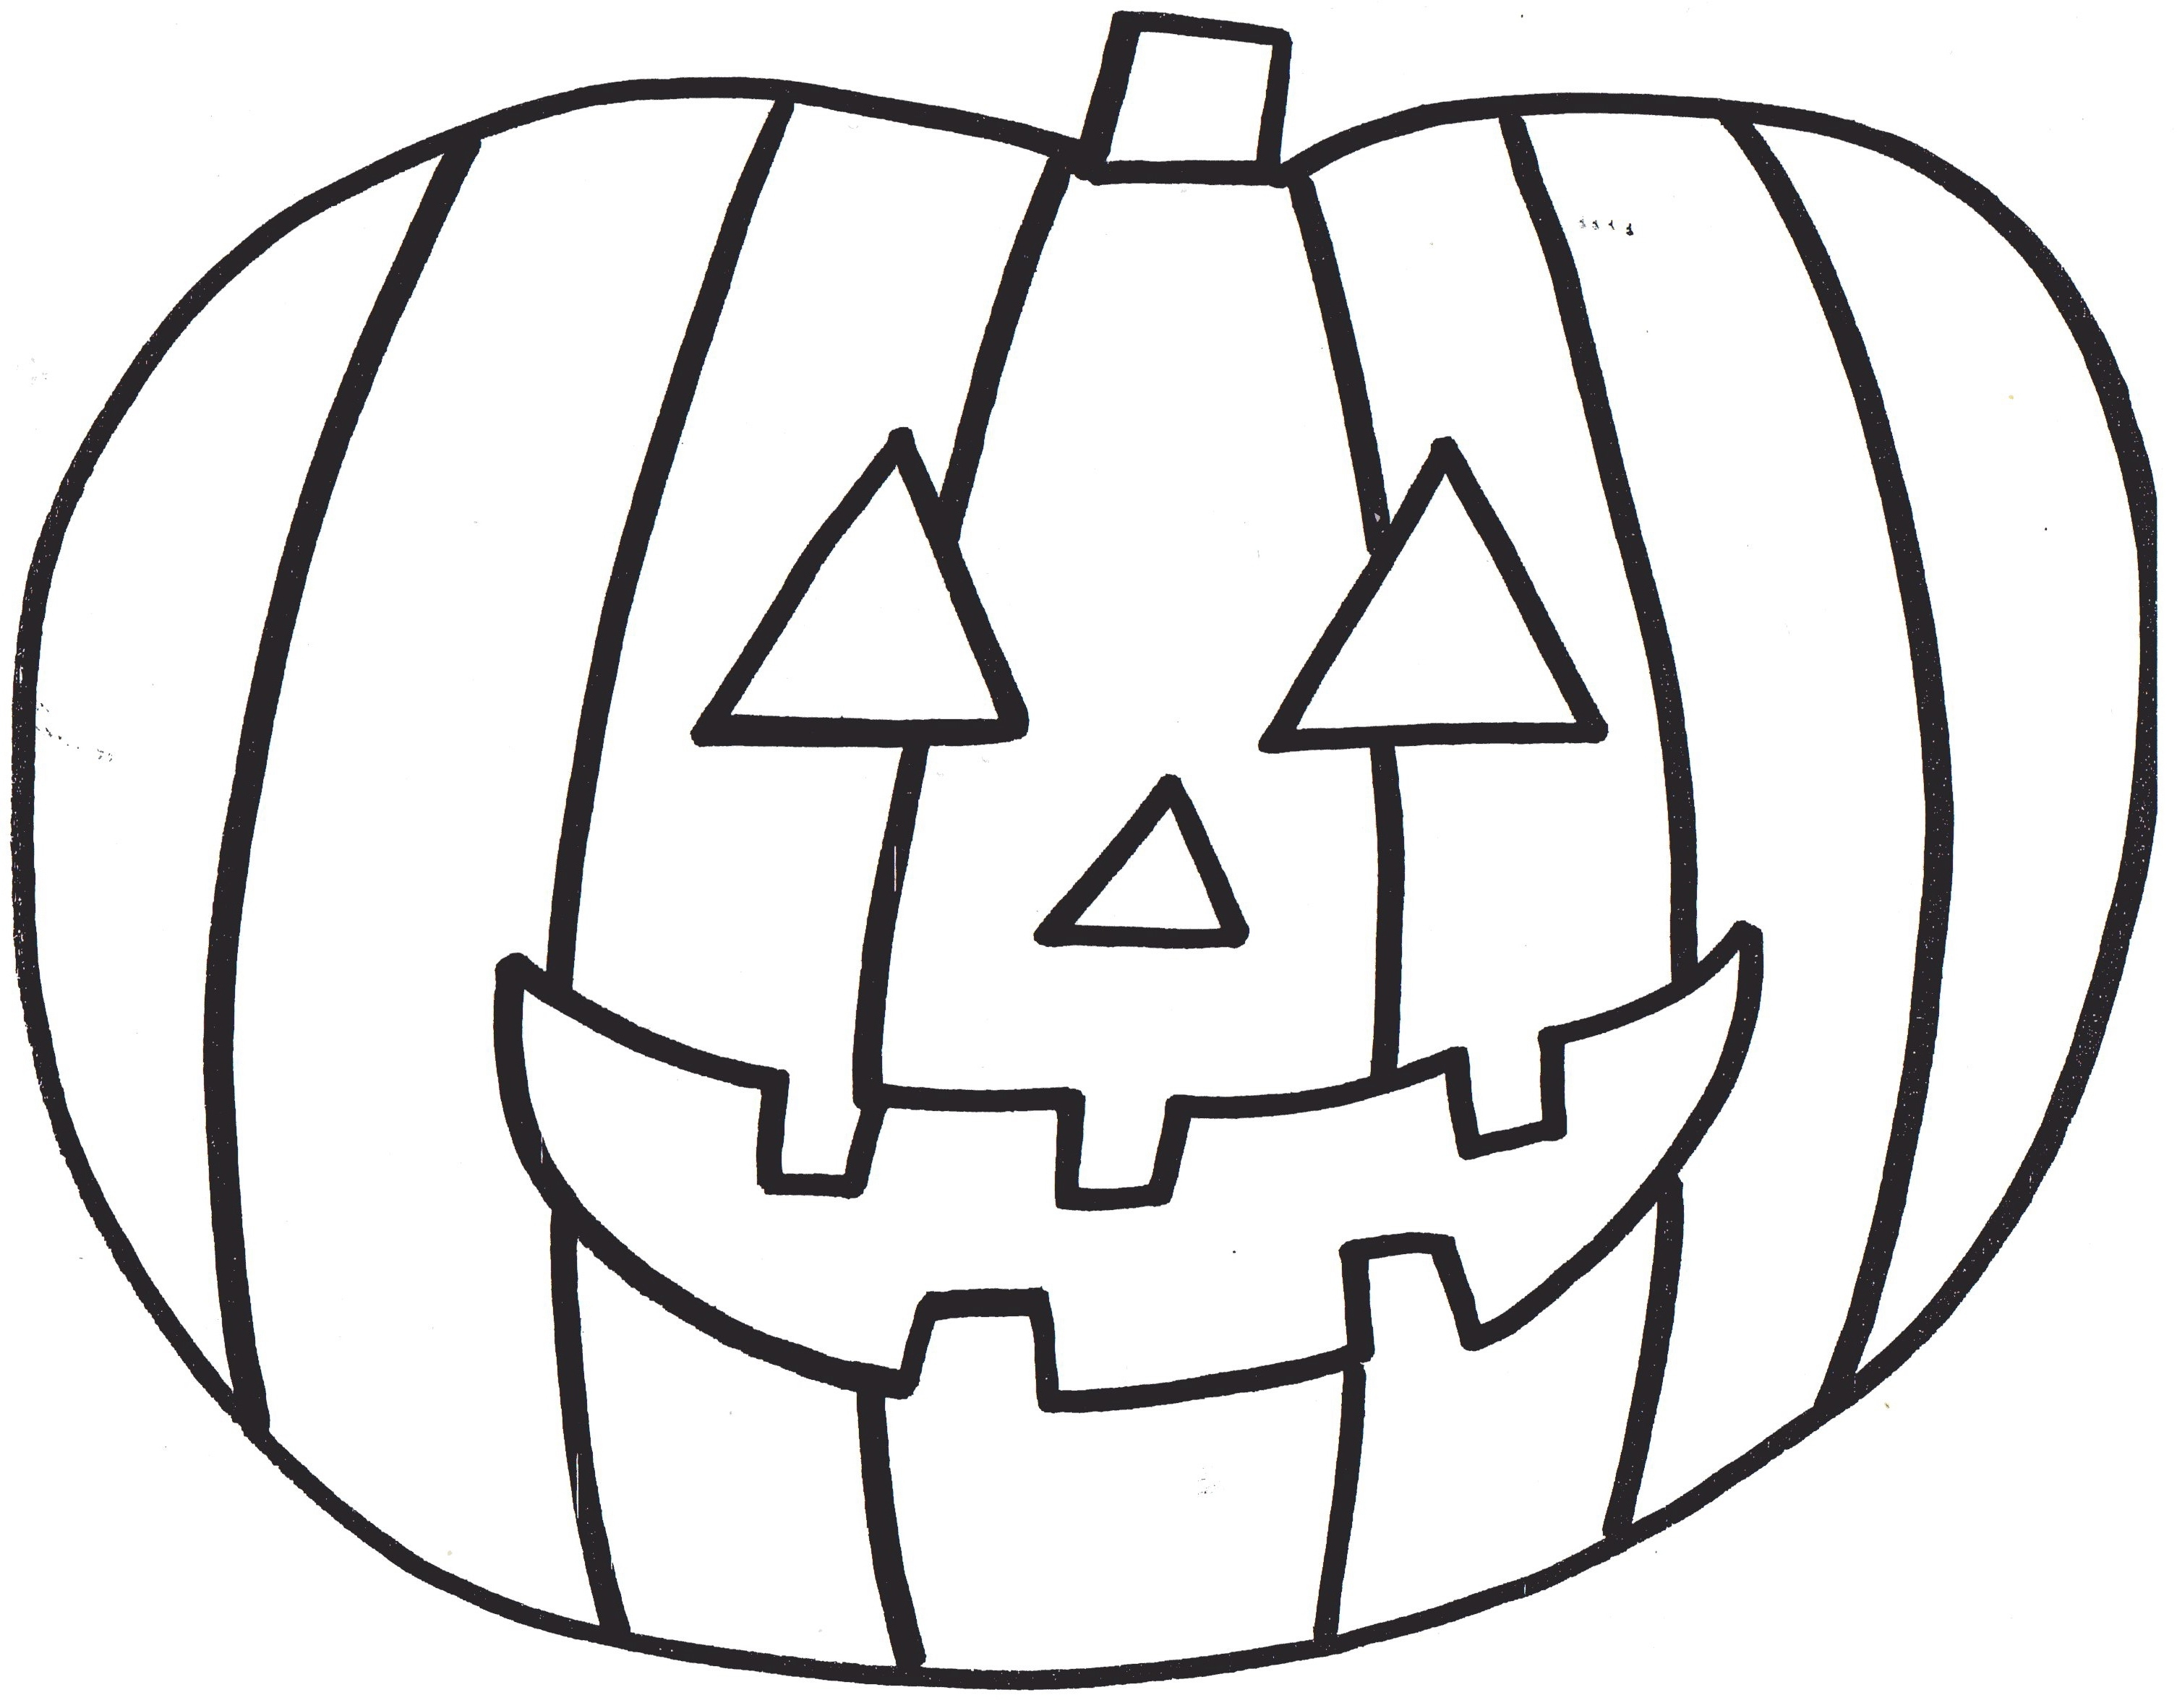 Halloween Pumpkin Coloring Pages Printables Coloring Pages Free Pumpkin Coloring Preschoolers At Printable